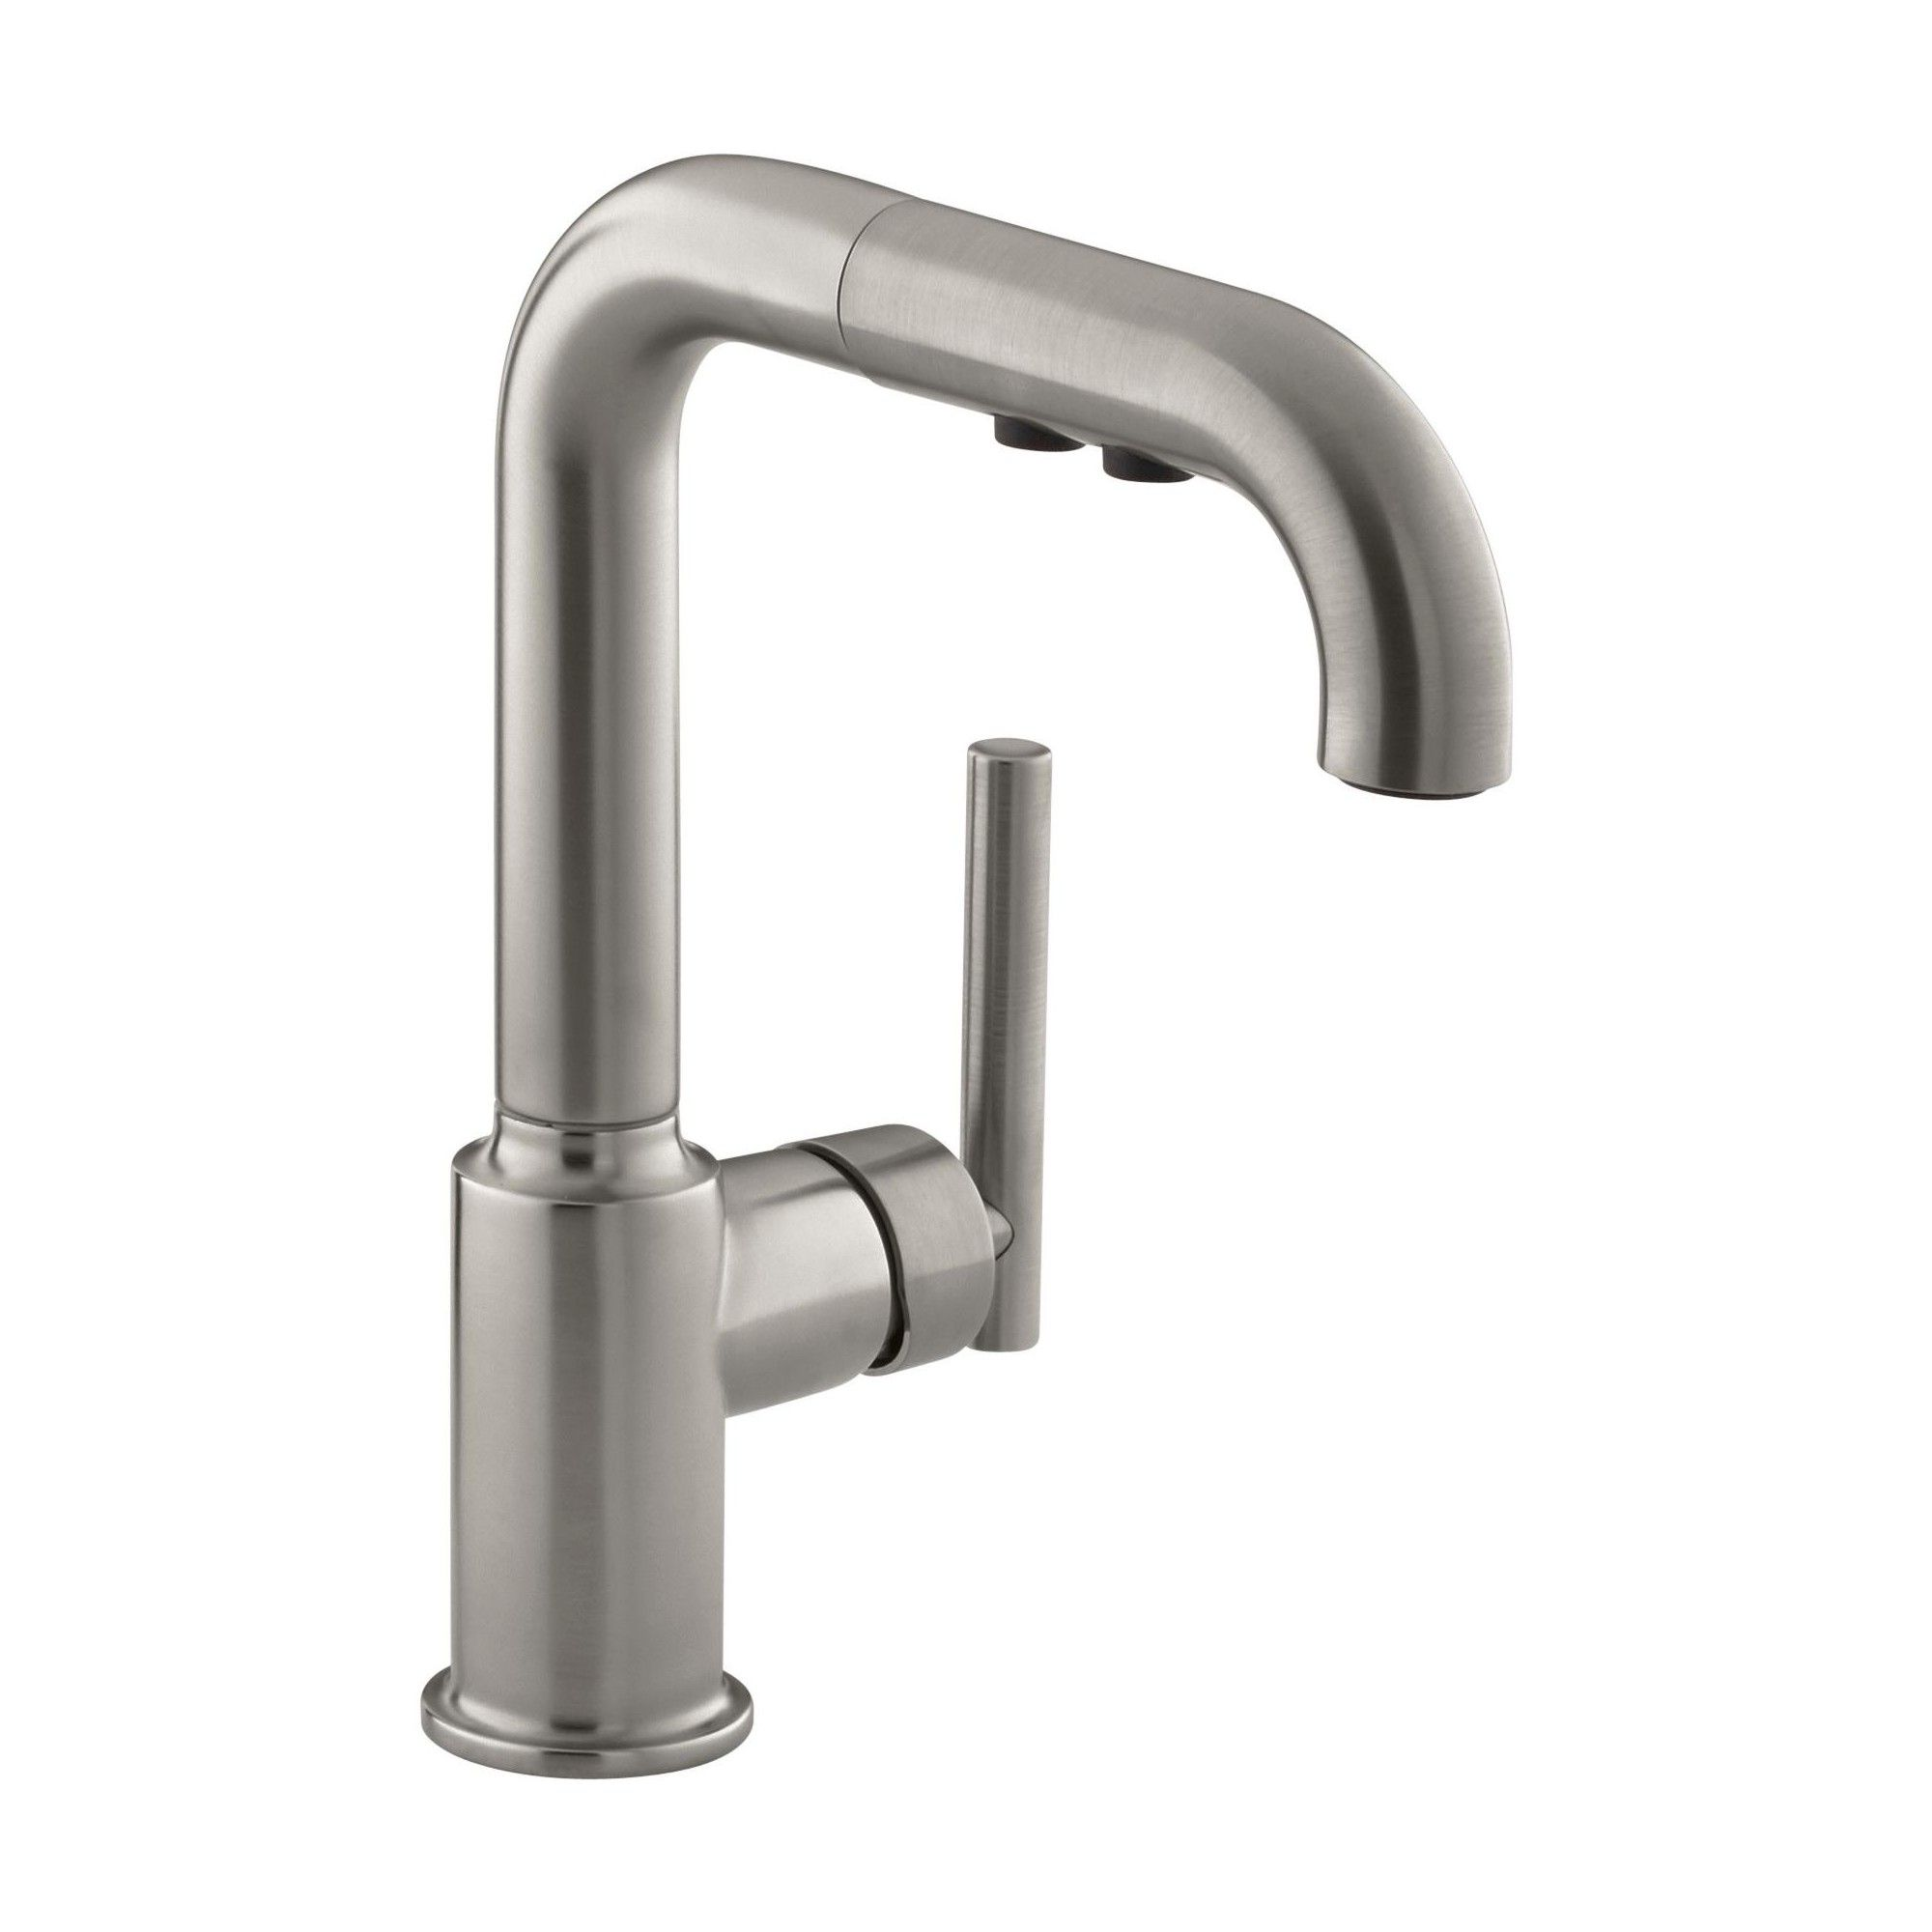 Kohler K 7506 Single Handle Kitchen Faucet With Pullout Spray From